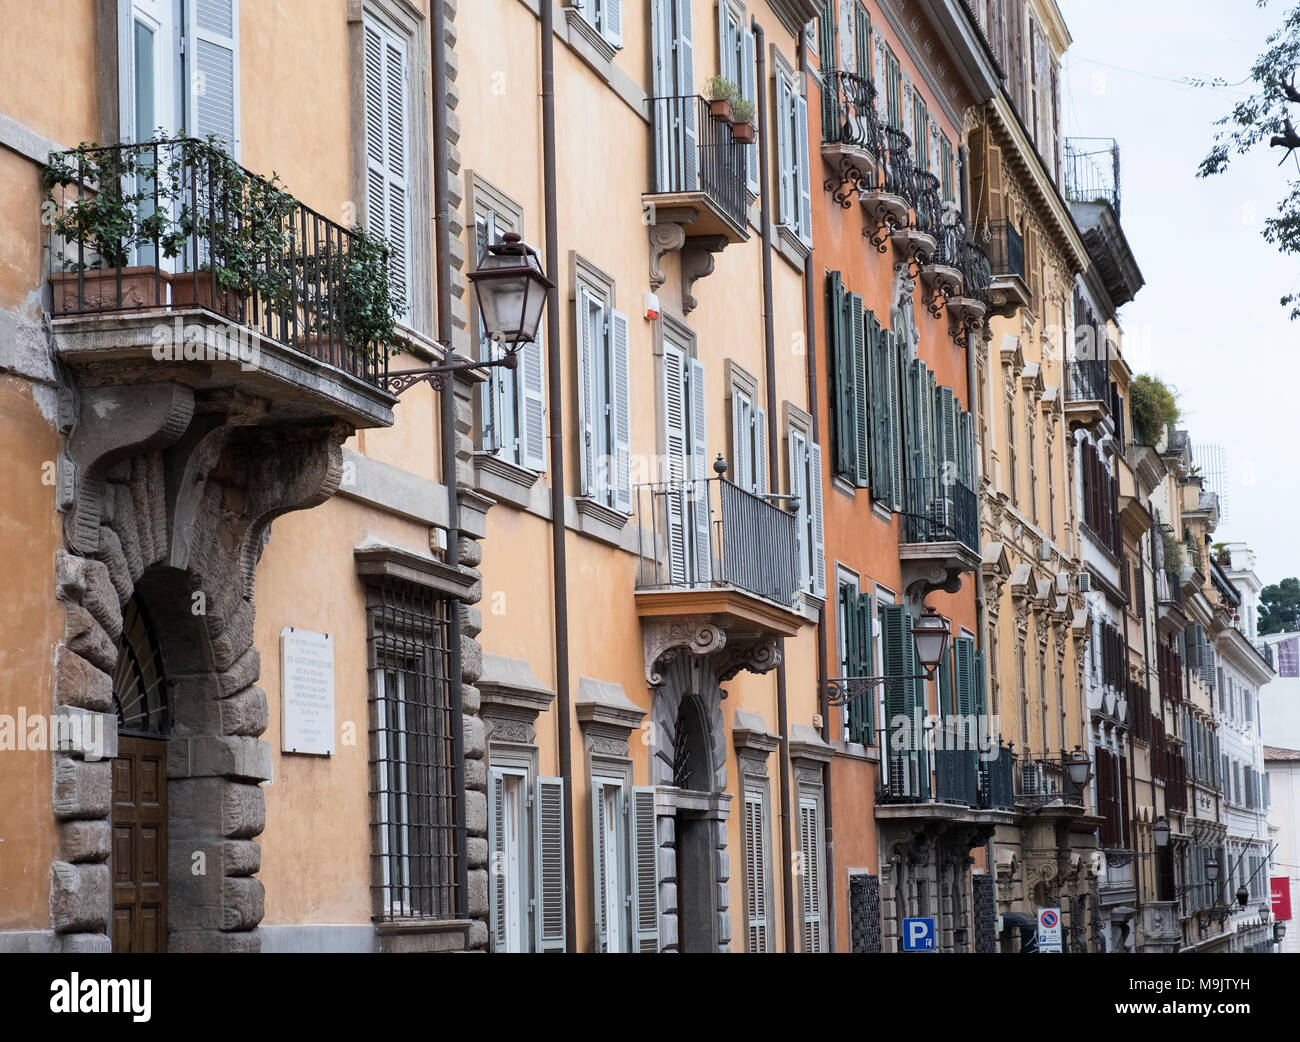 Houses on the Via Gregorianain Rome Italy. Stock Photo